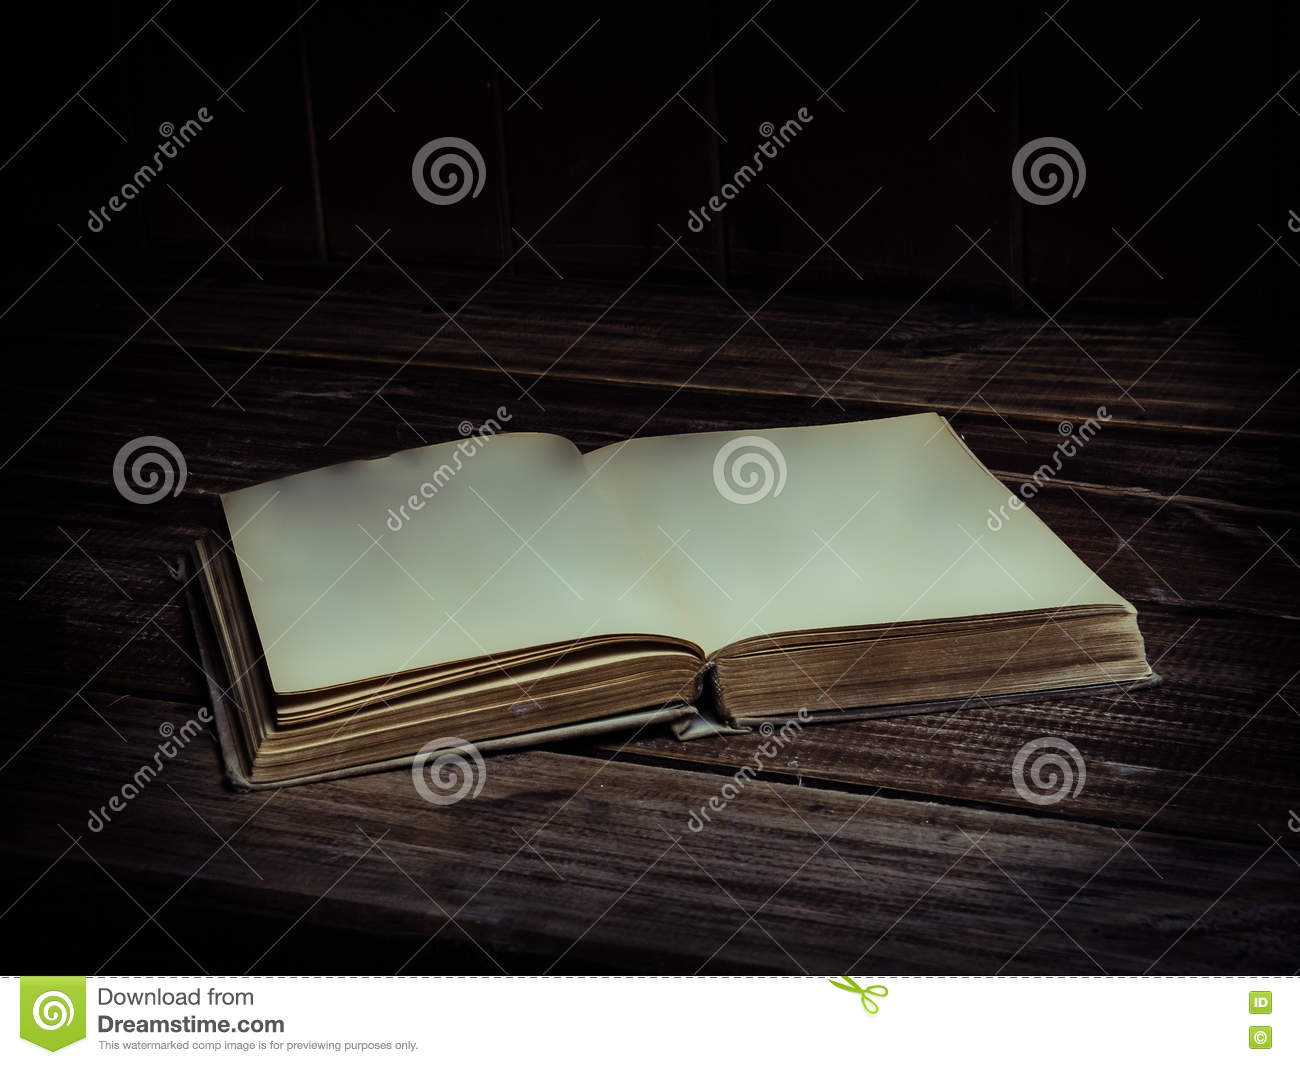 Blank pages to color on - Old Antique Opened Book With Blank Pages On A Wooden Table